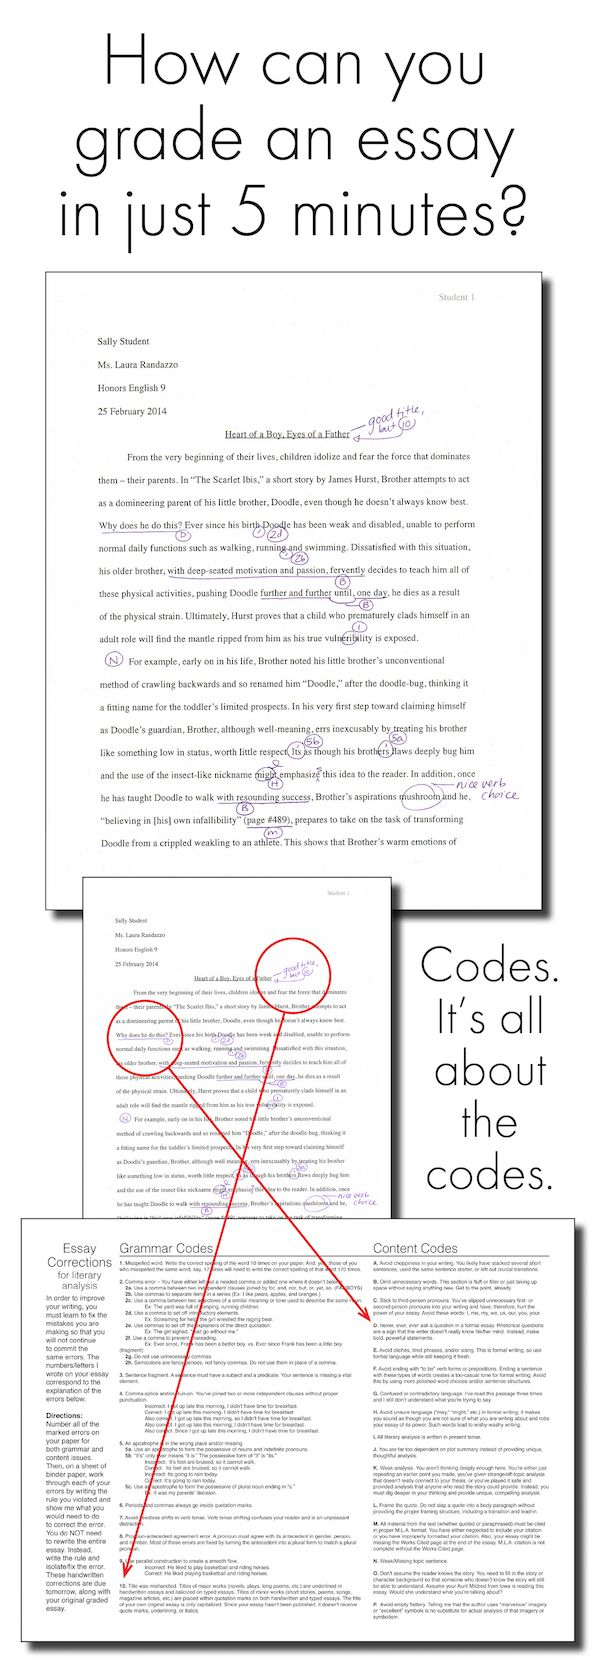 Reclaim your nights and weekends! Learn to grade an essay in just 5 minutes. #essays #grading #paperload #gradingsystem #teacher